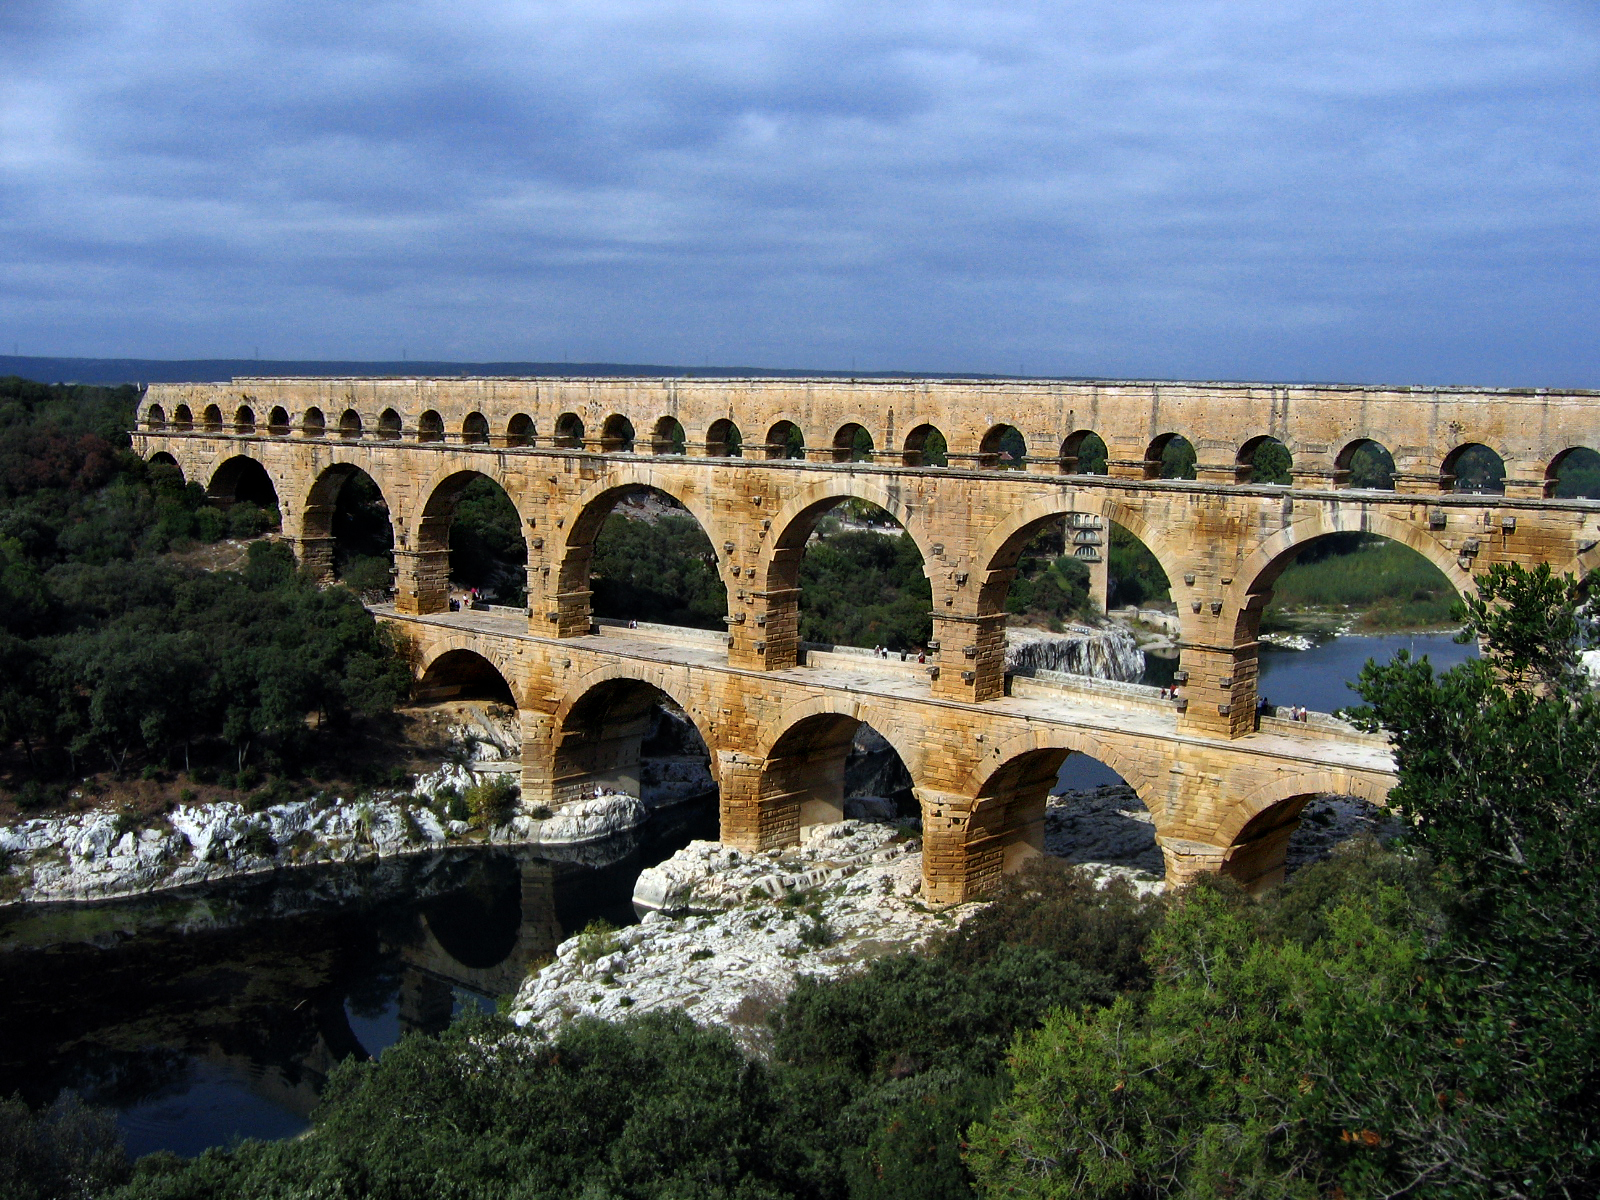 The multiple arches of the Pont du Gard in Roman Gaul (modern-day southern France). The upper tier encloses an aqueduct that carried water to Nimes in Roman ...